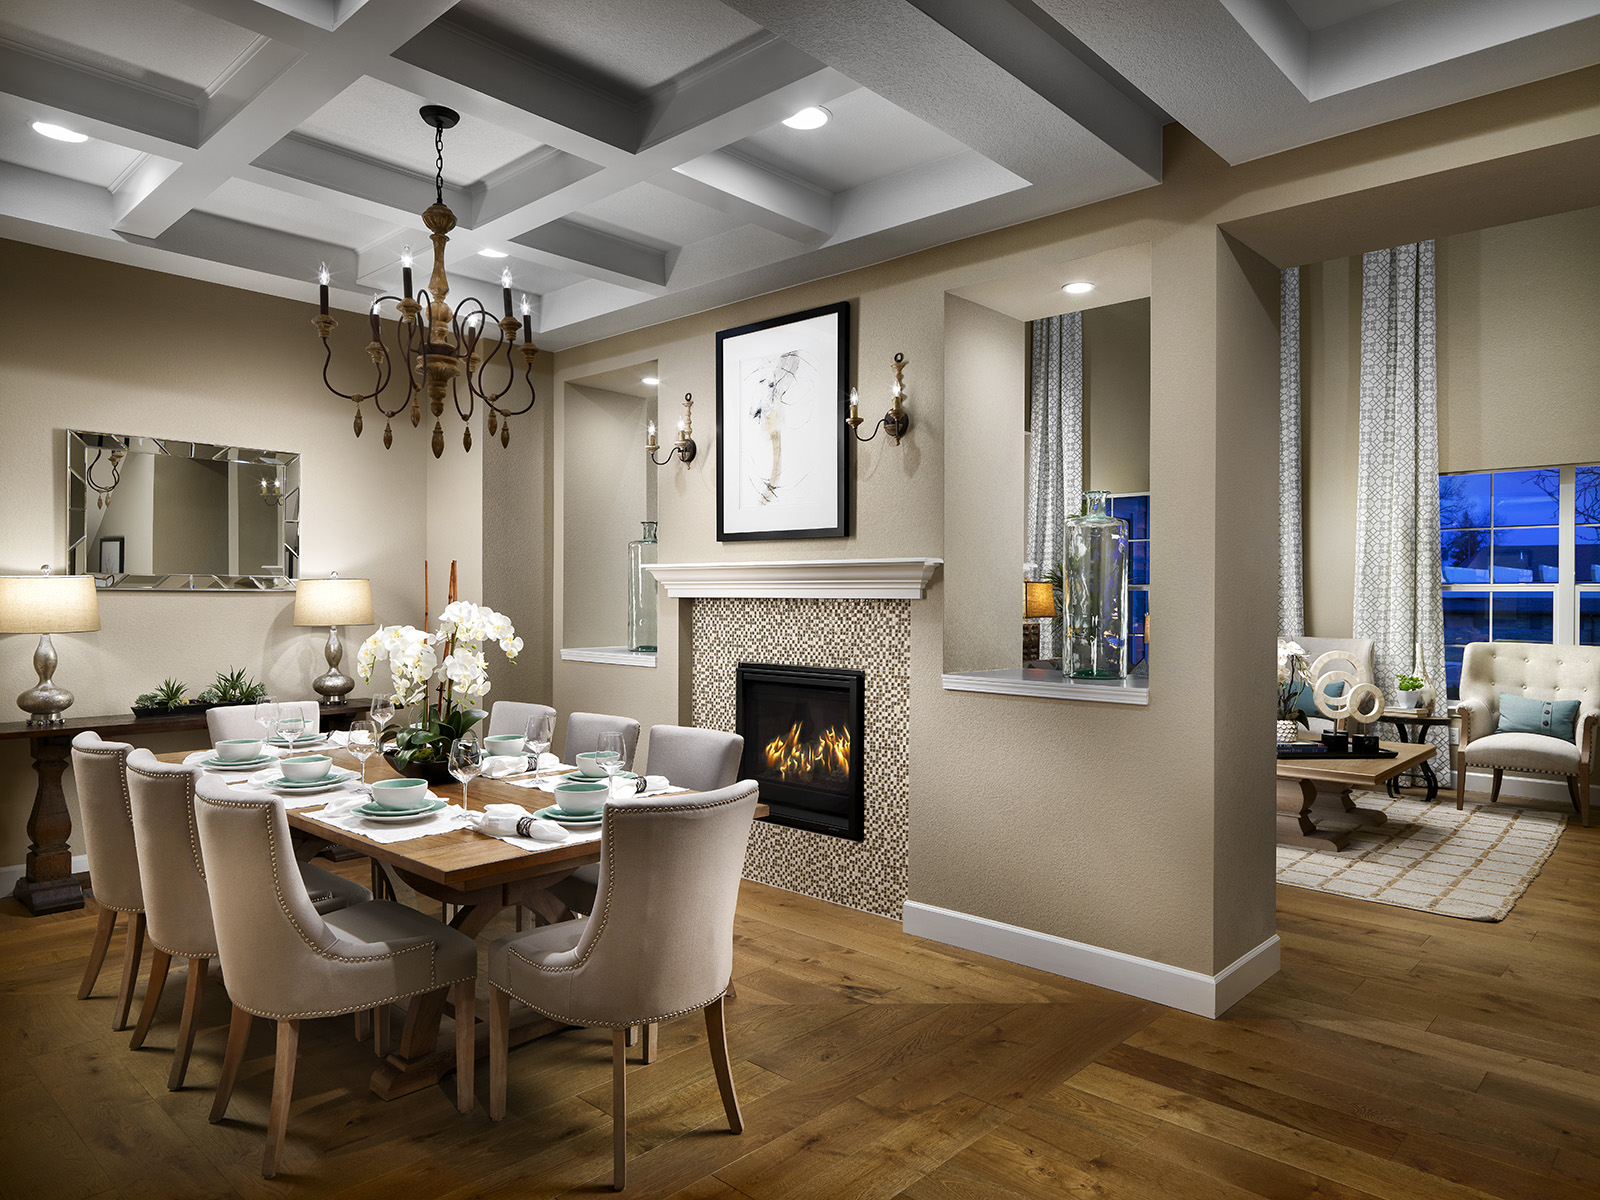 The Kenosha's two sided fire place warms the elegant dining and great room